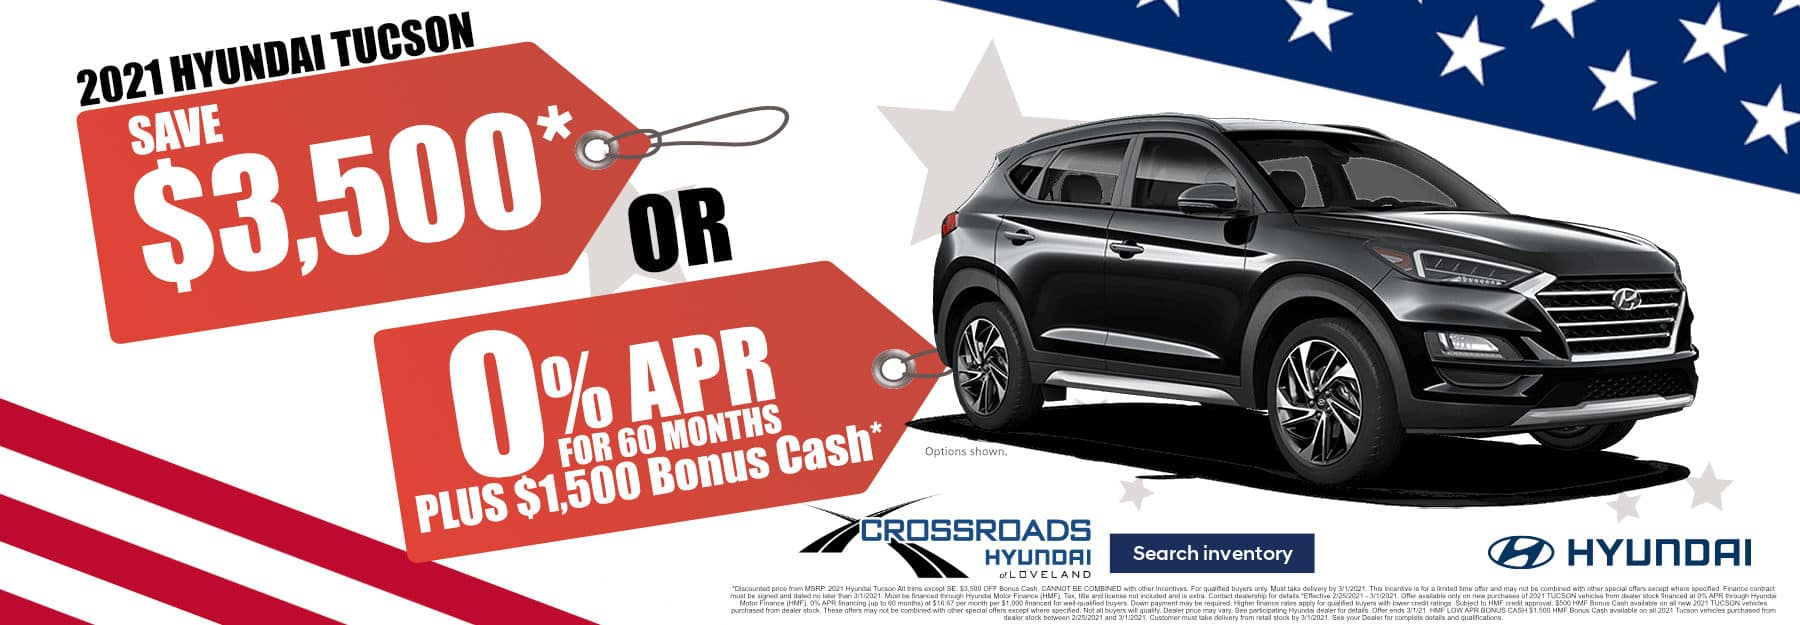 Revised_February_2021_MY21TUCSON$3,500_Crossroads_Hyundai